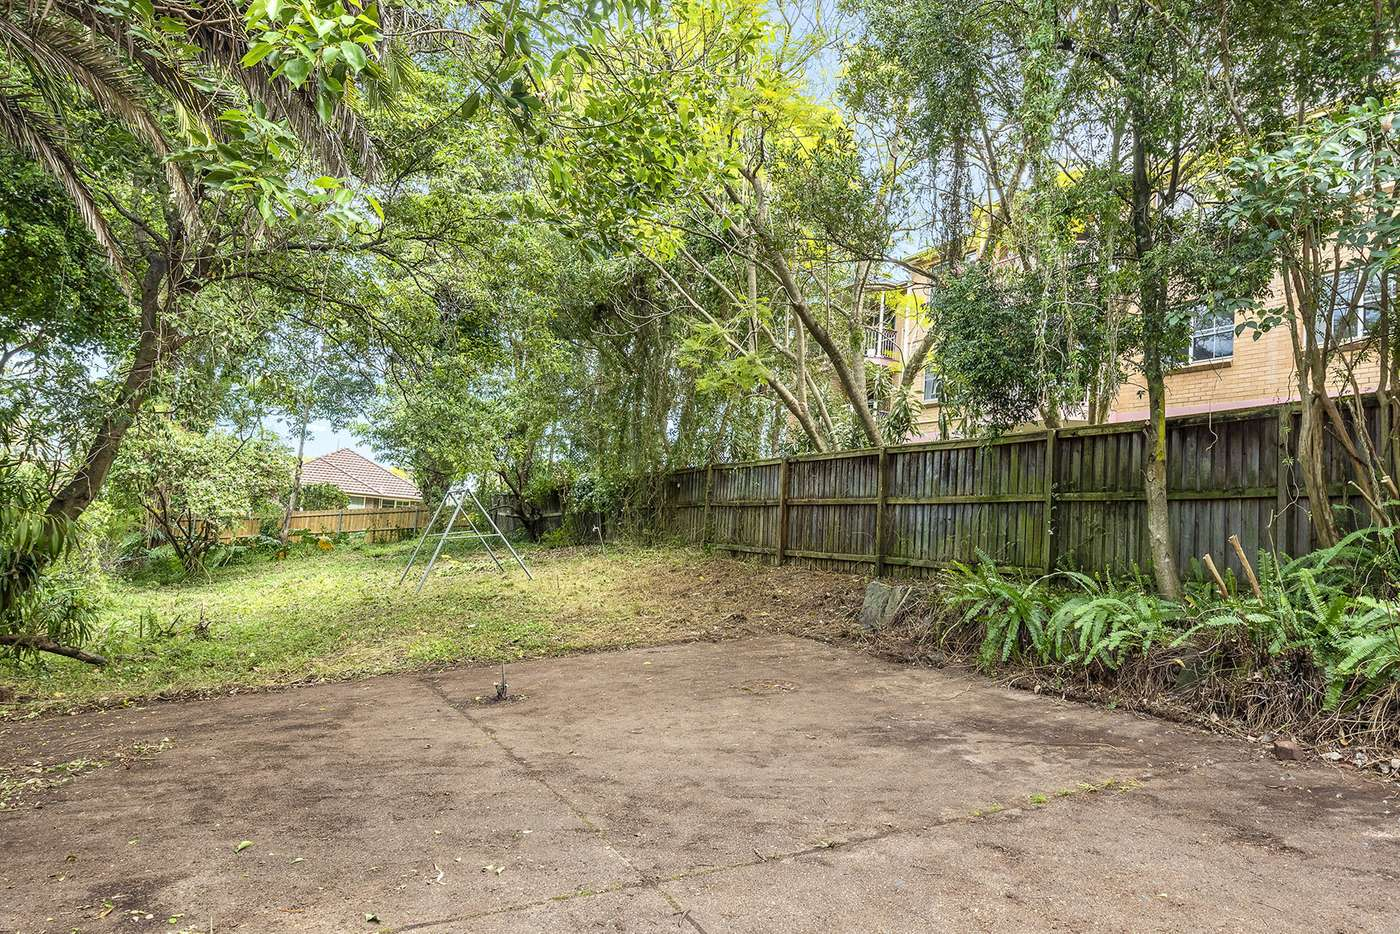 Main view of Homely house listing, 242 Mowbray Road, Artarmon NSW 2064